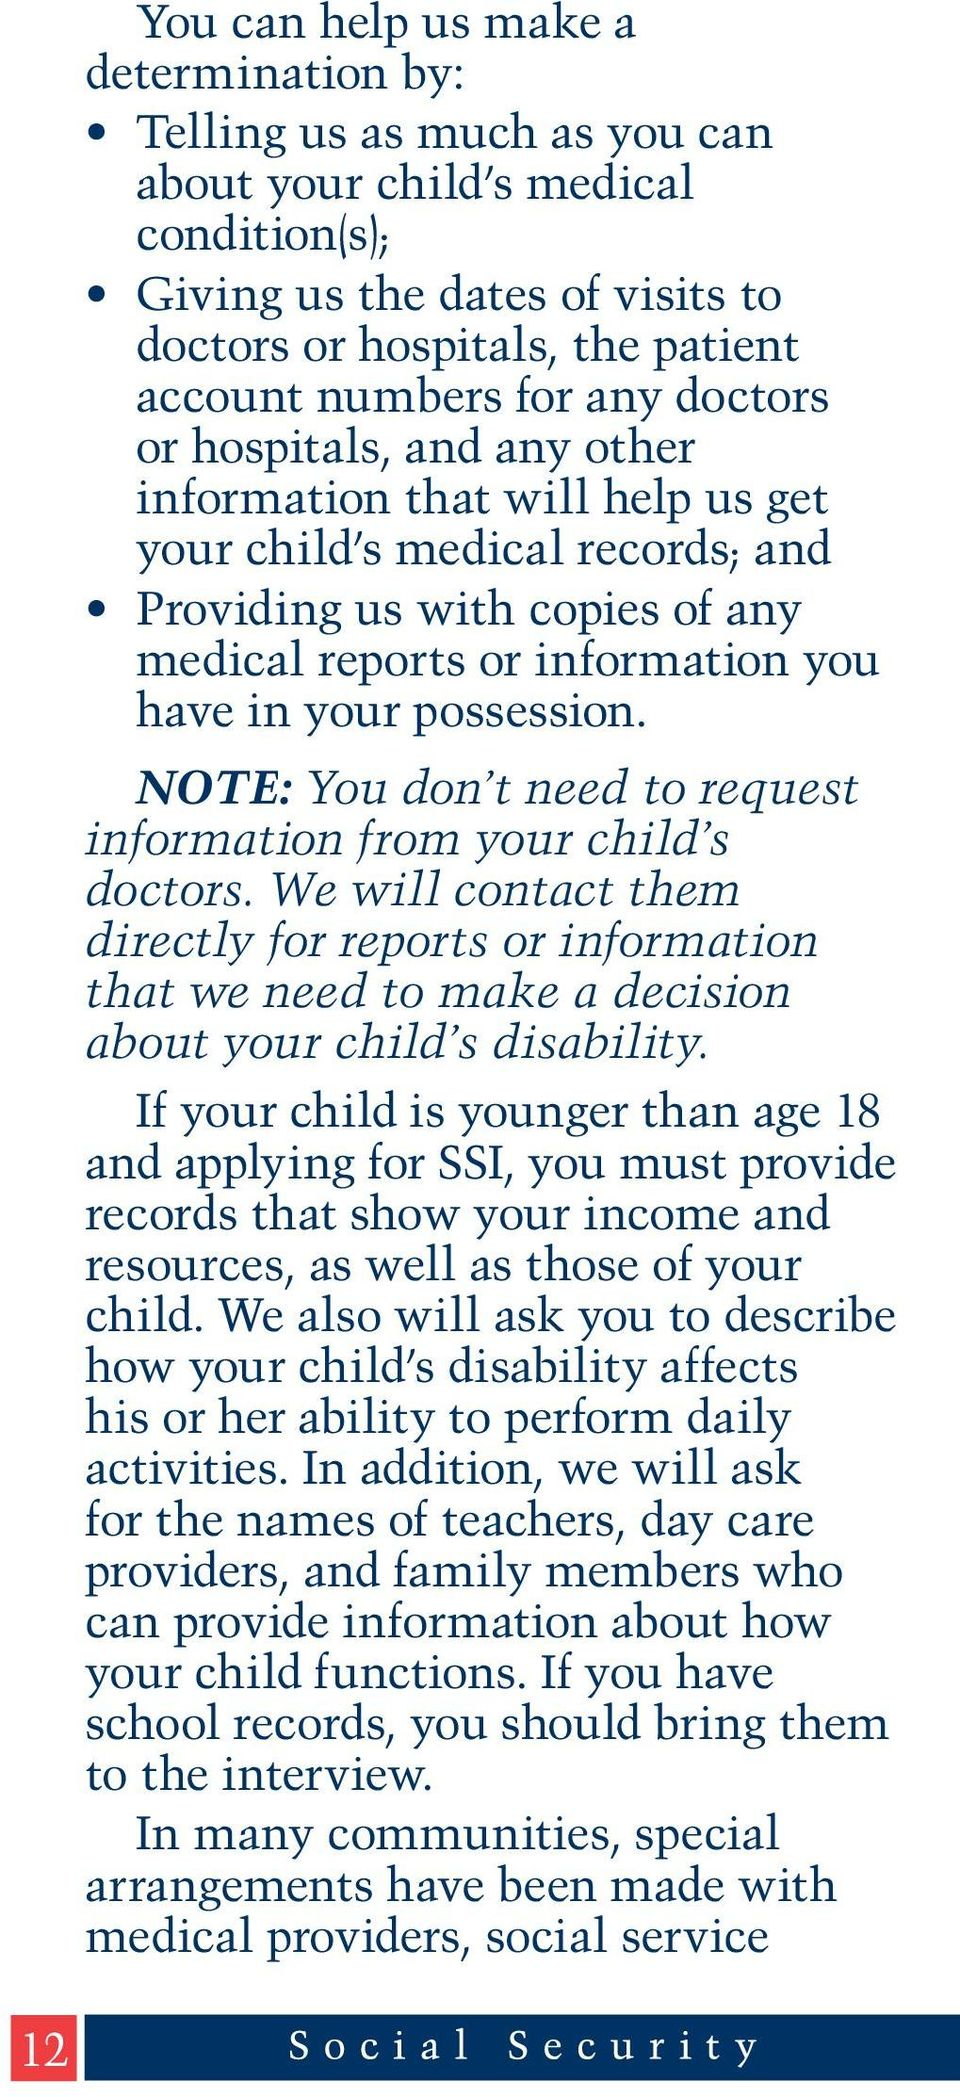 possession. NOTE: You don t need to request information from your child s doctors.